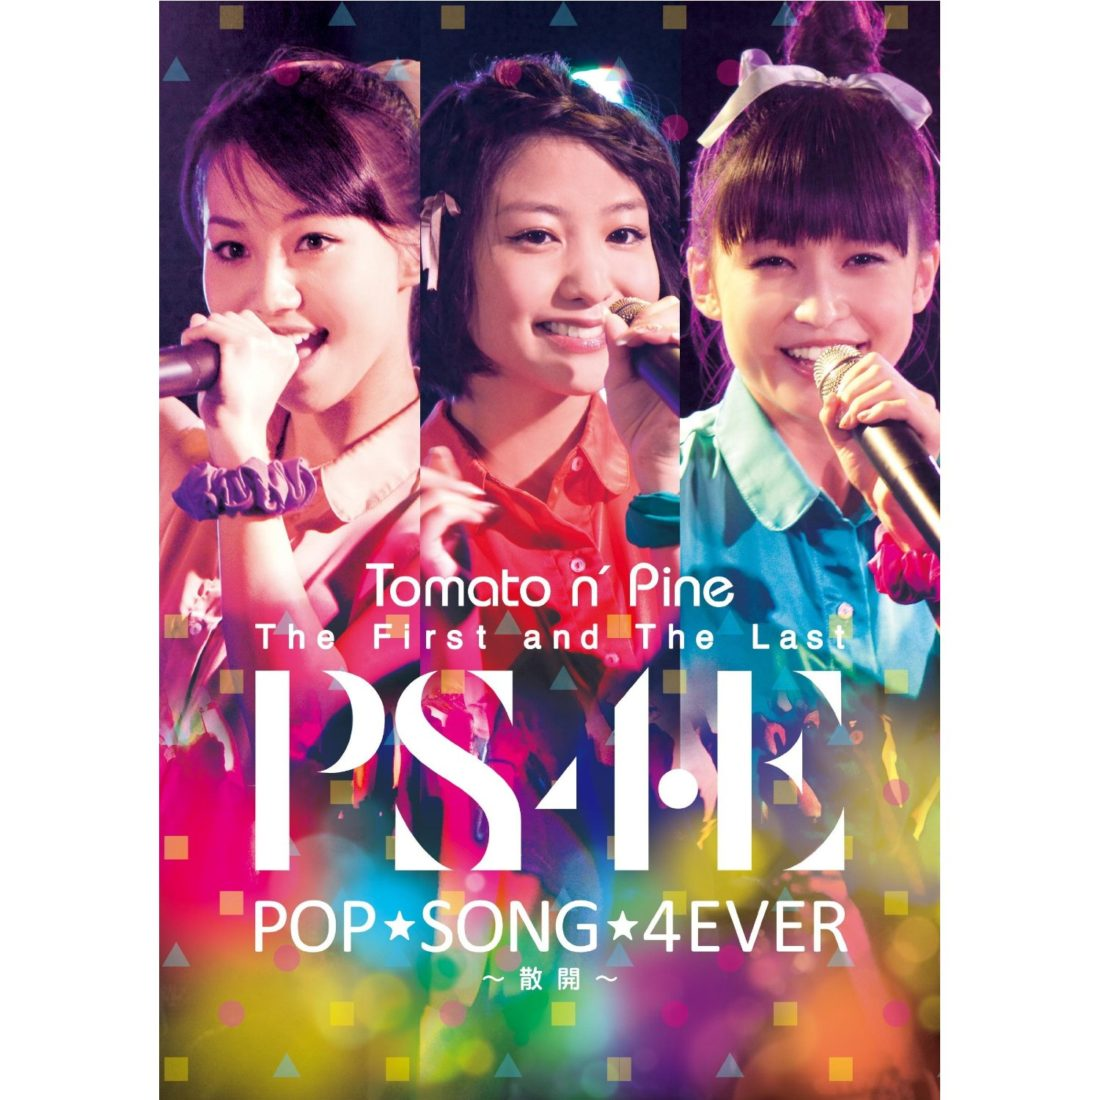 """Tomato n'PineラストワンマンライブDVD「The First and The Last Live DVD """"POP SONG 4EVER ~散開~"""" 」"""